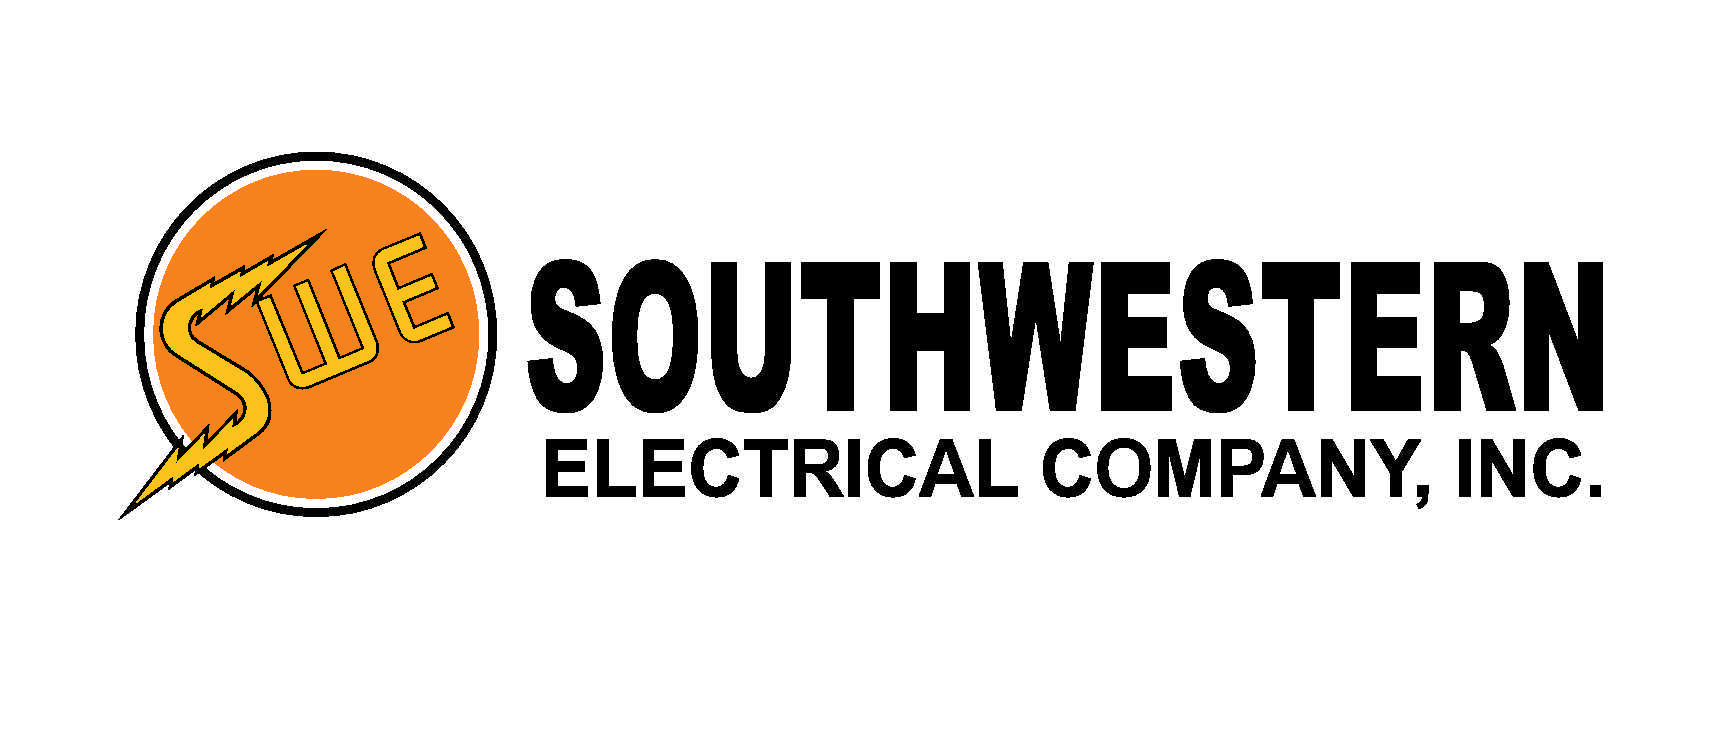 Southwestern Electrical